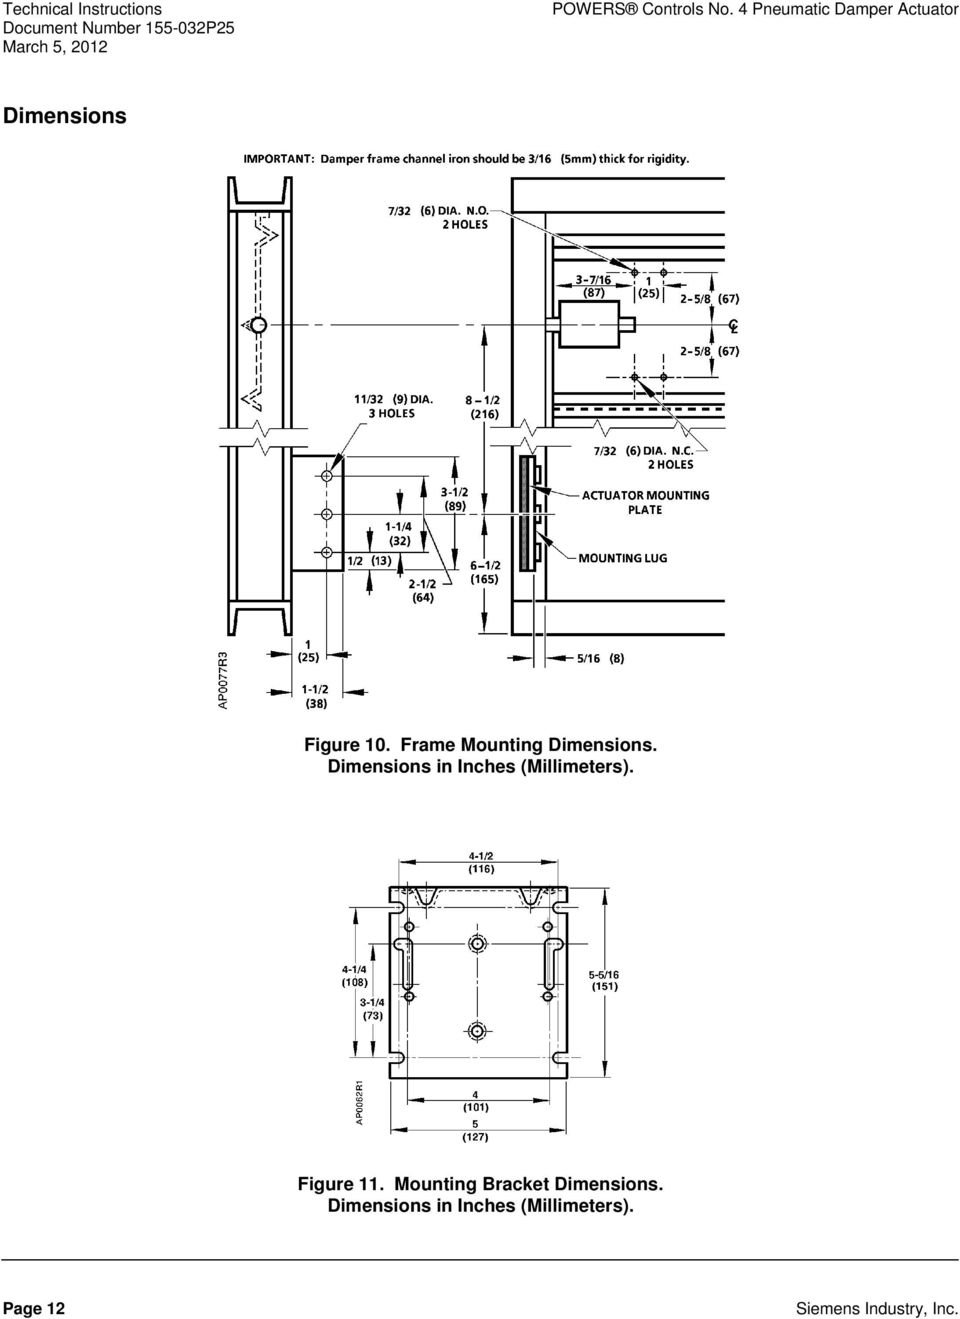 Figure 10. Frame Mounting Dimensions.